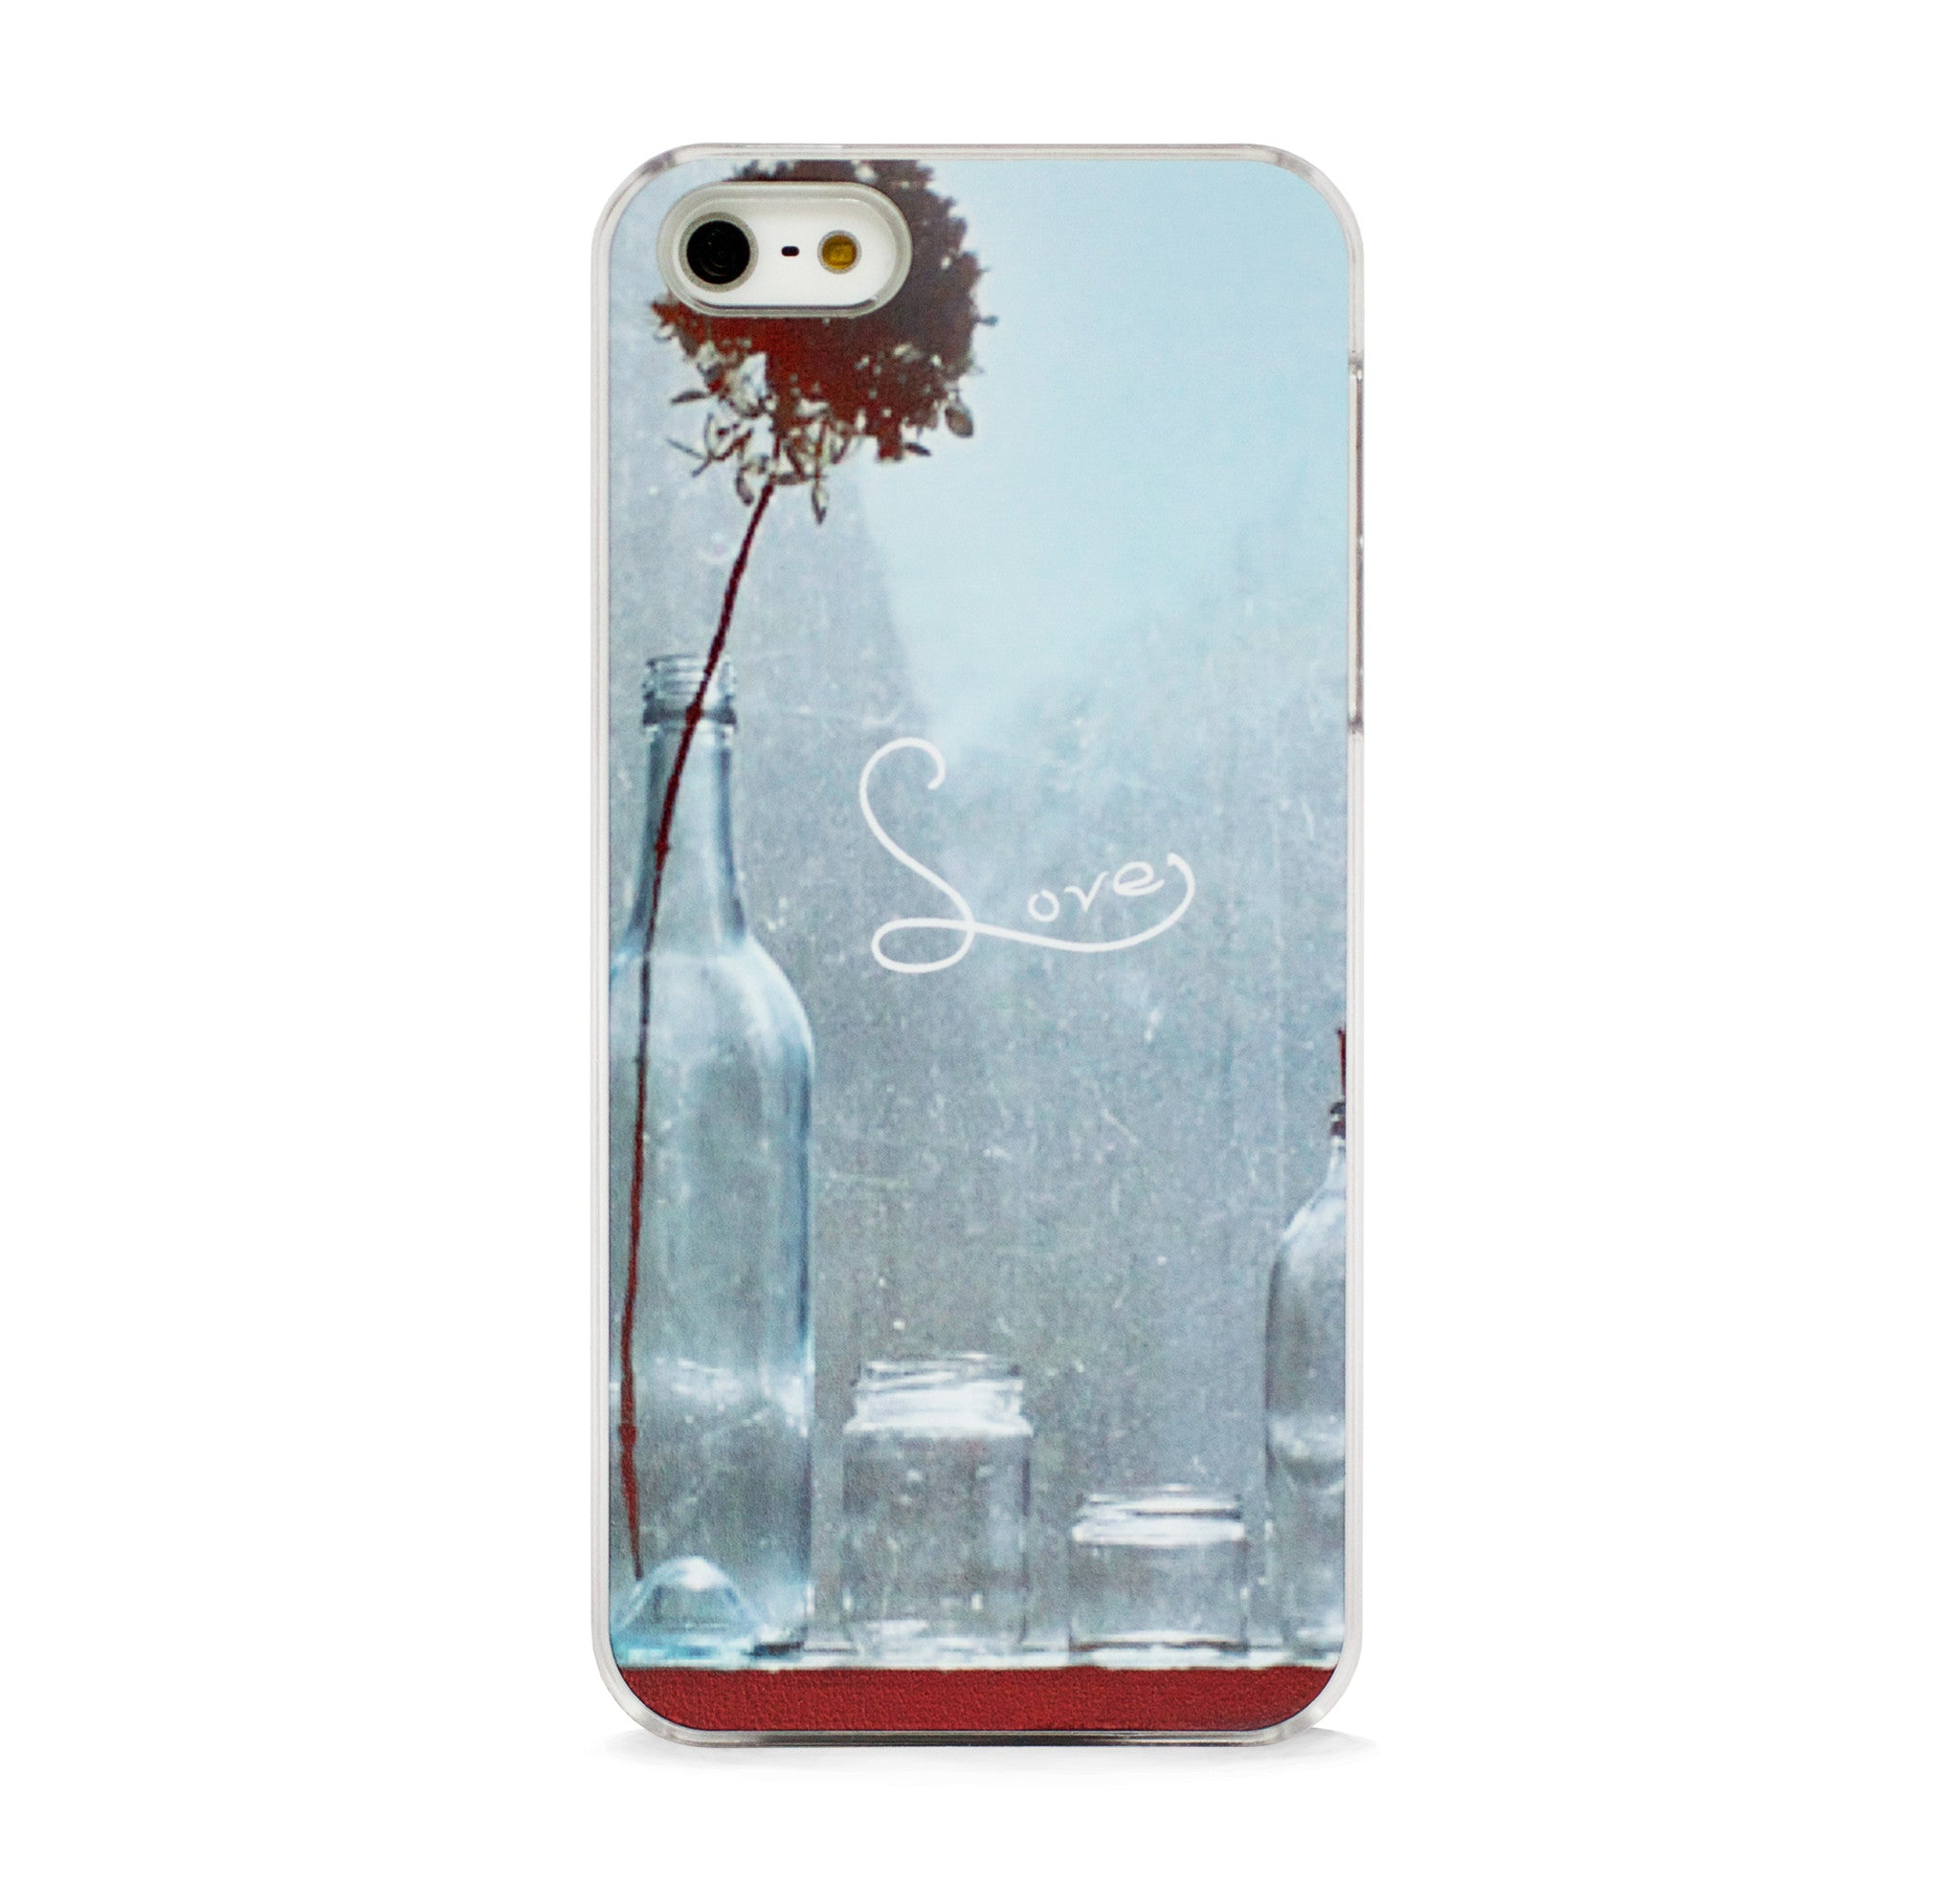 GEO NATURE BOTTLE LOVE FOR IPHONE 5/5S